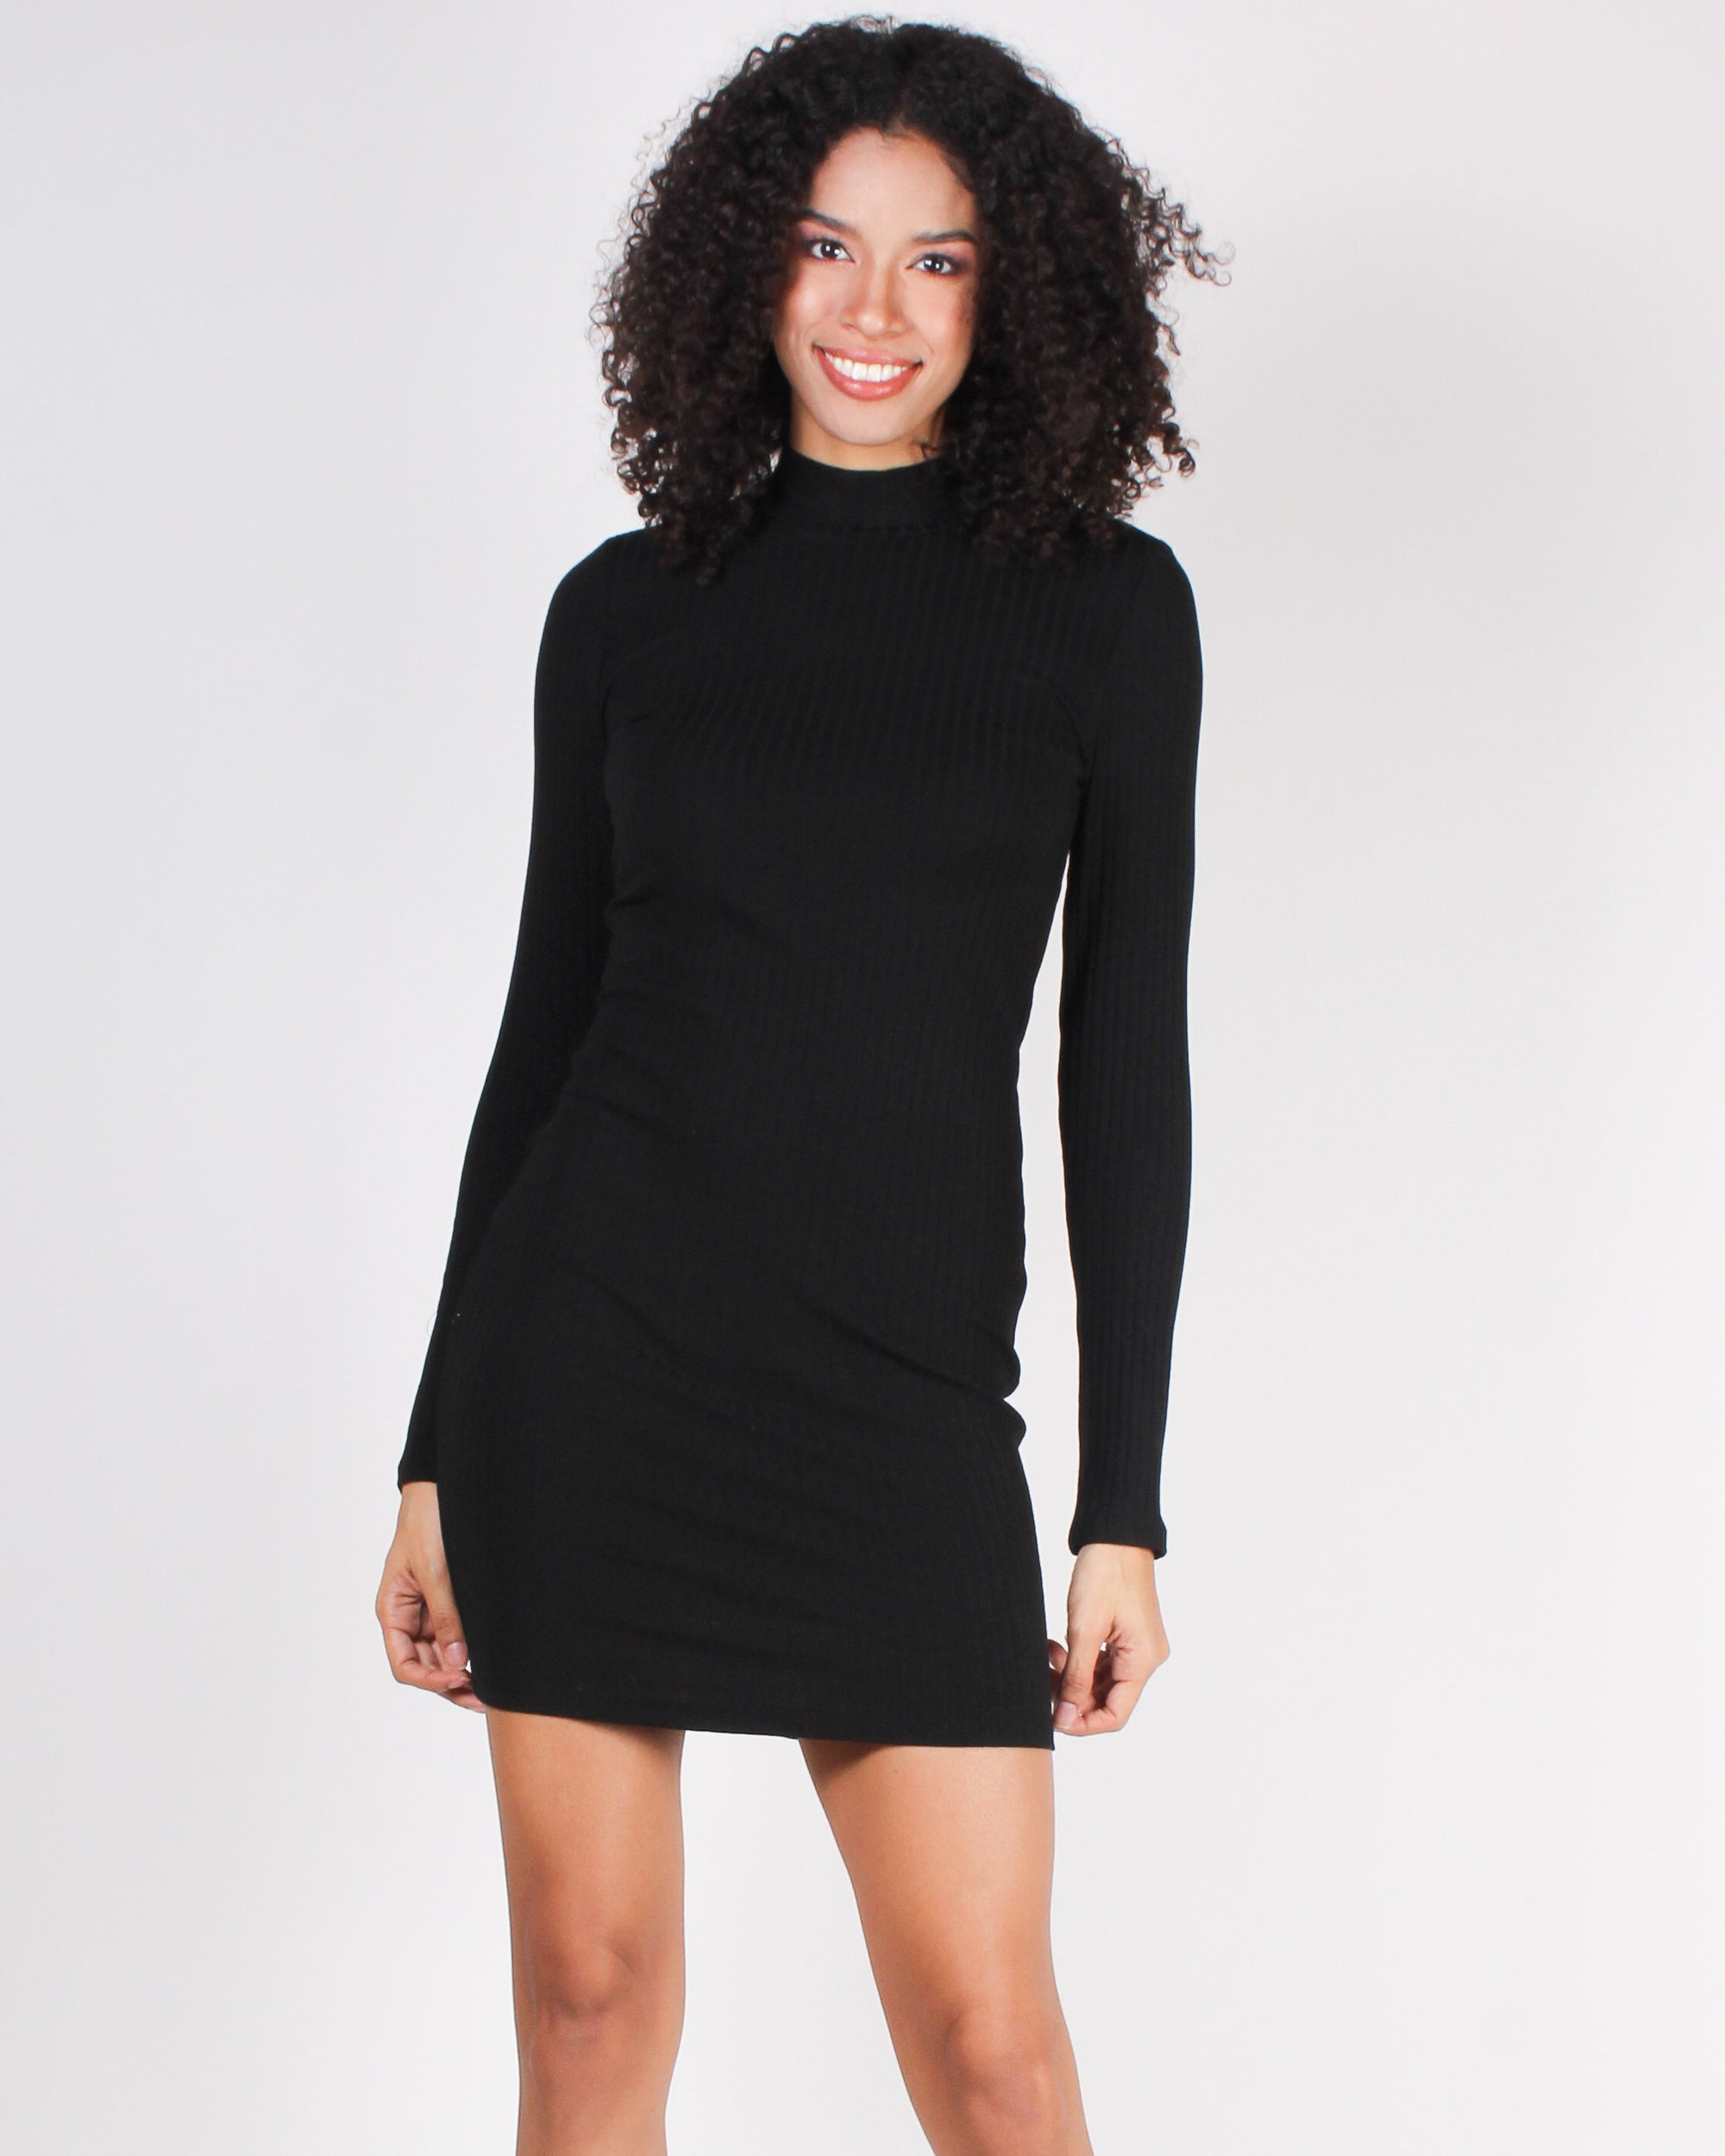 Fashion Q Shop Q Simplicity is the Ultimate Sophistication Bodycon Dress RD36498L